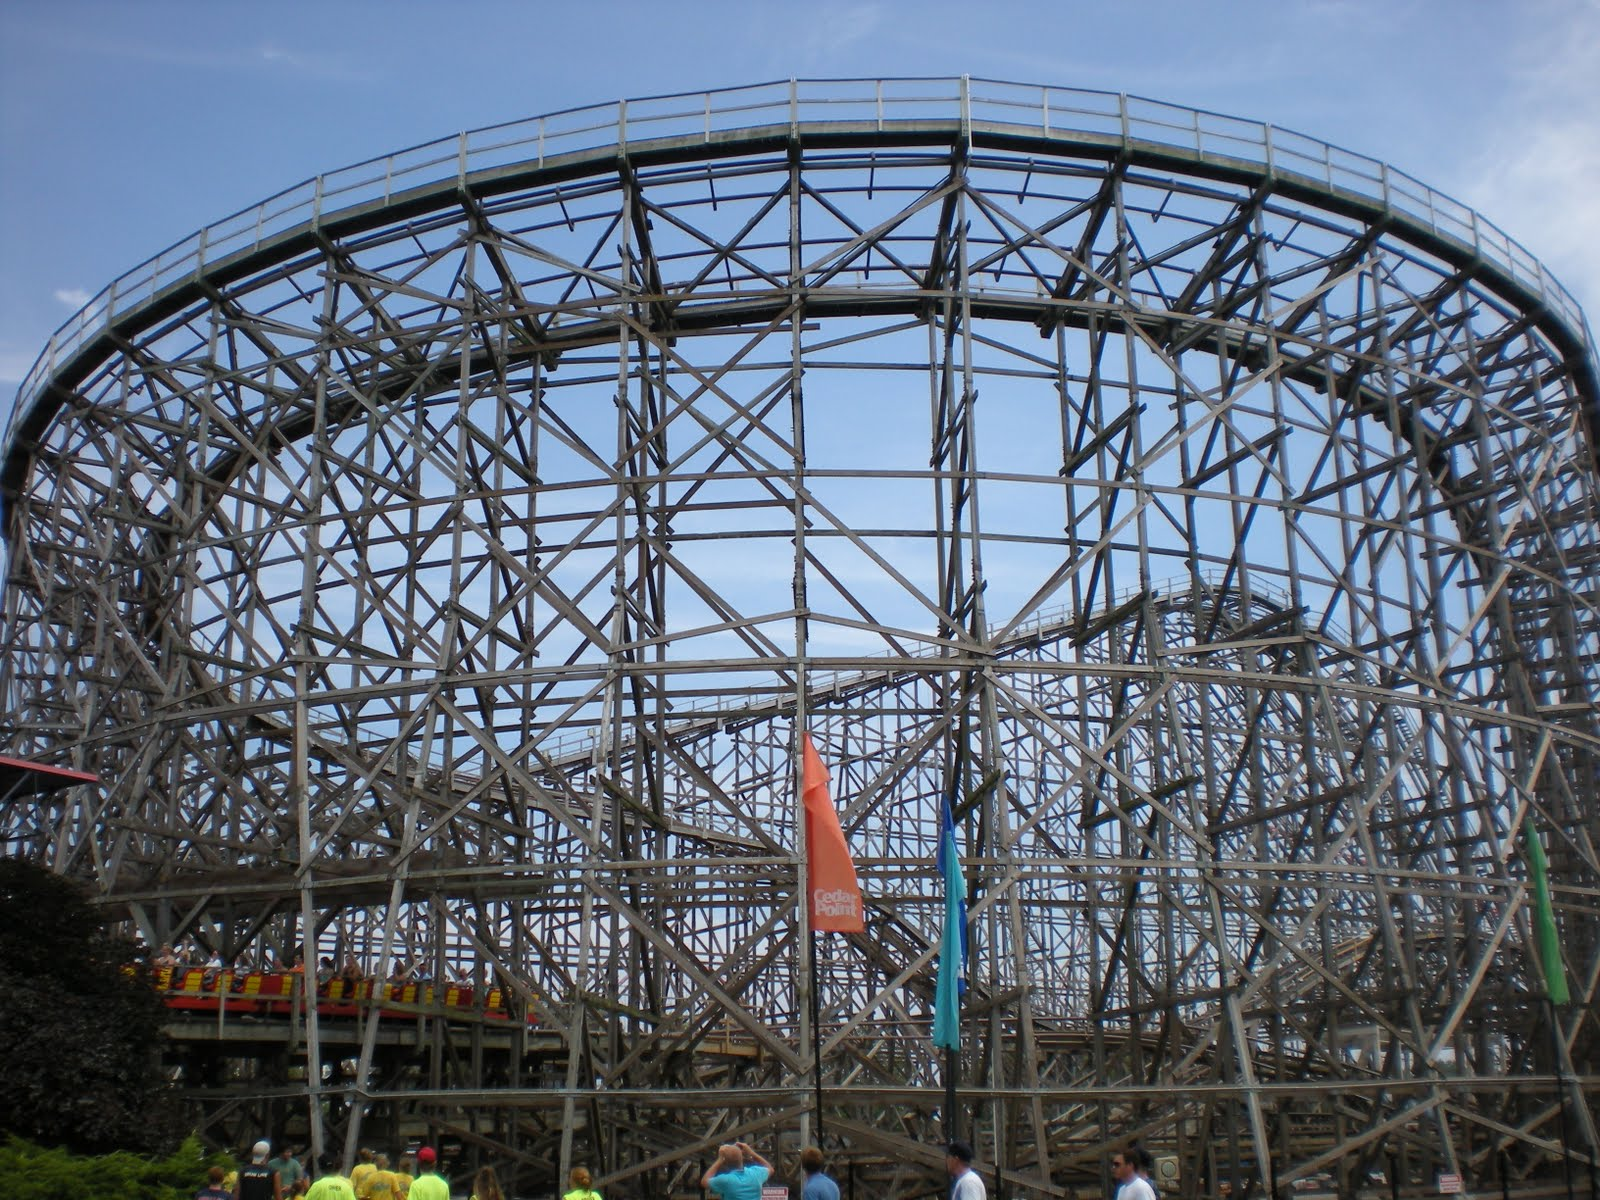 Jr gemini roller coaster - photo#28